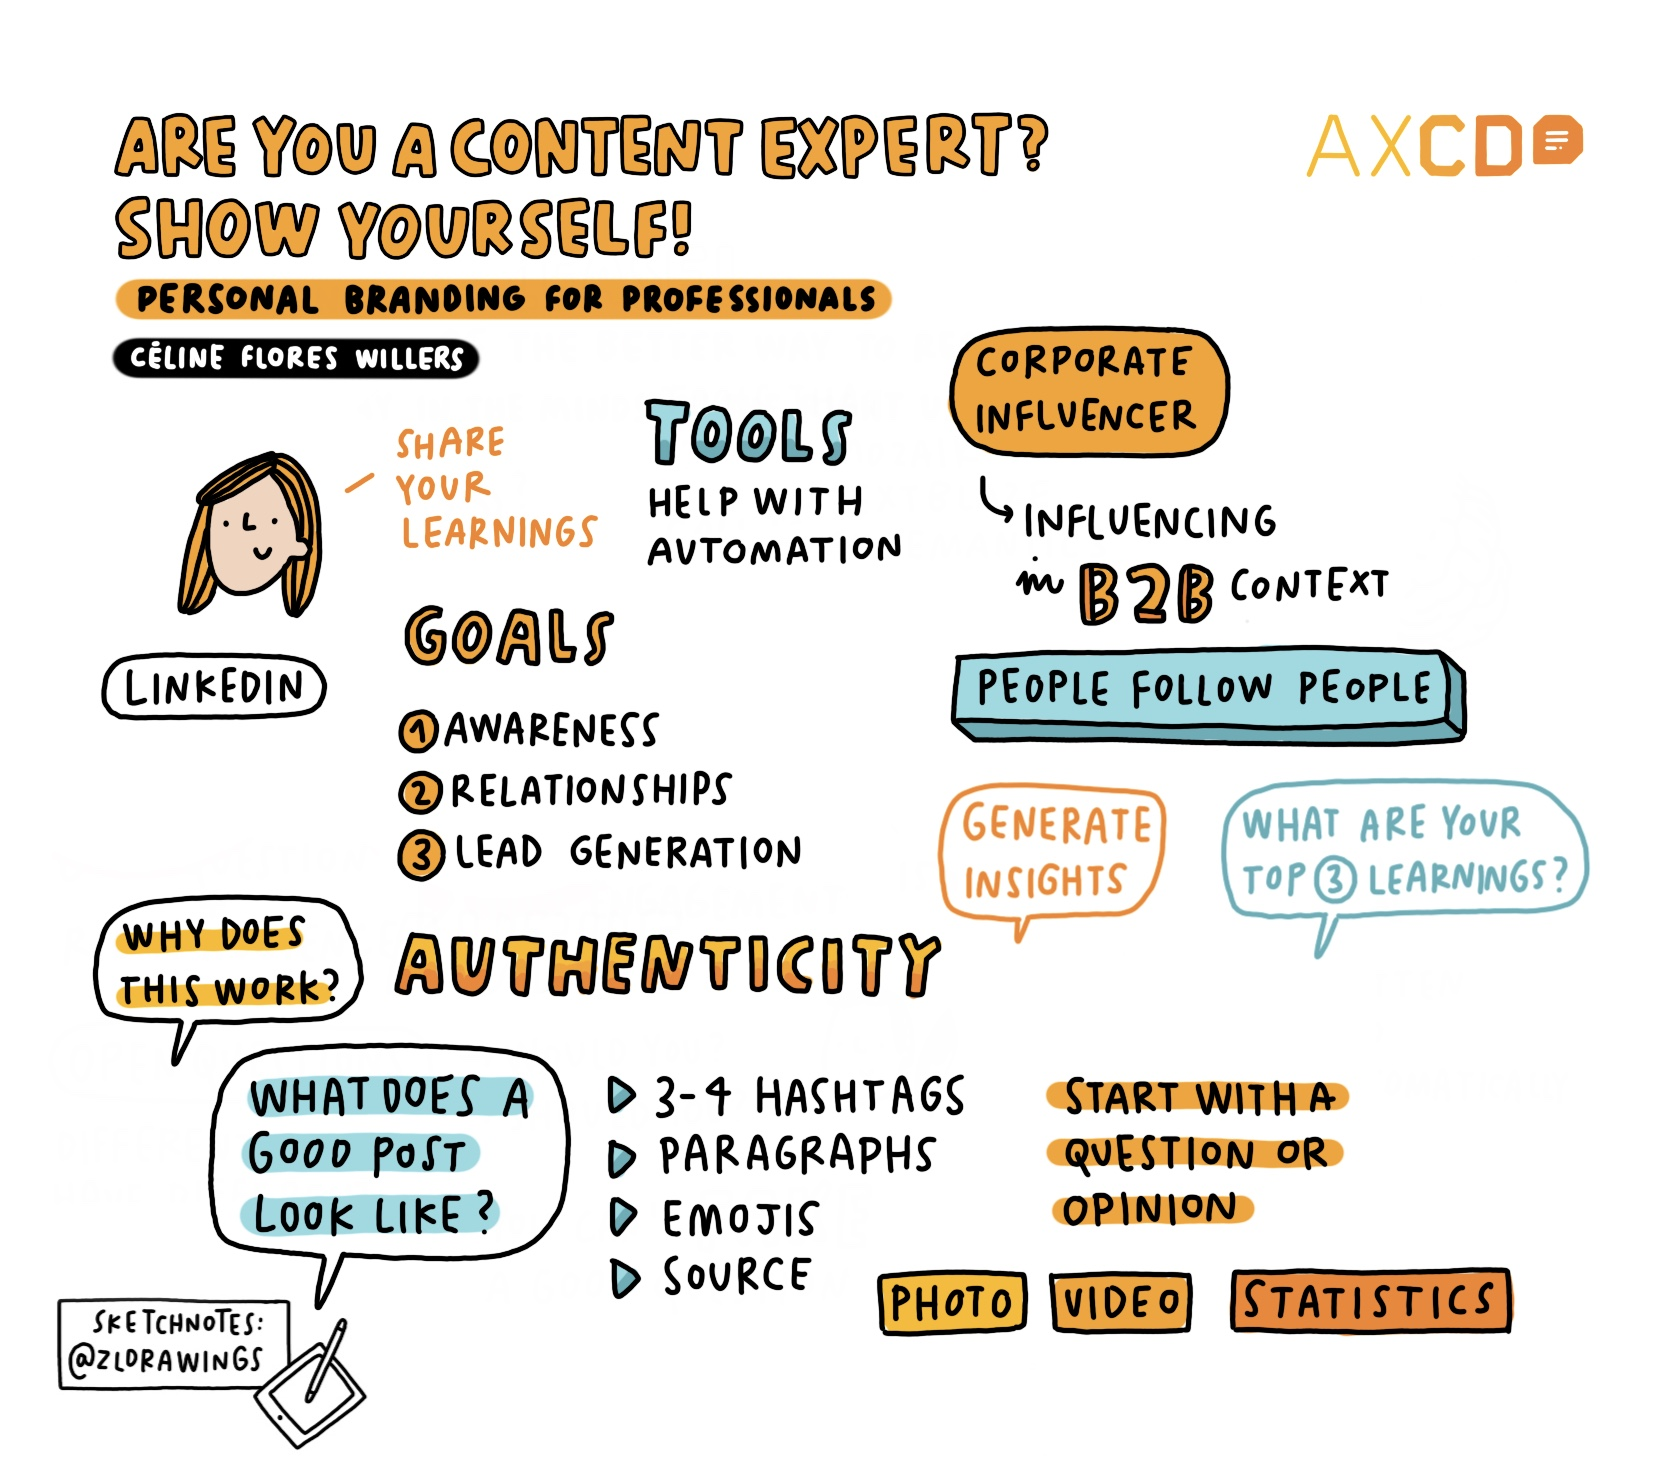 Sketchnote: are you a content expert - AXCD talk about personal branding for experts